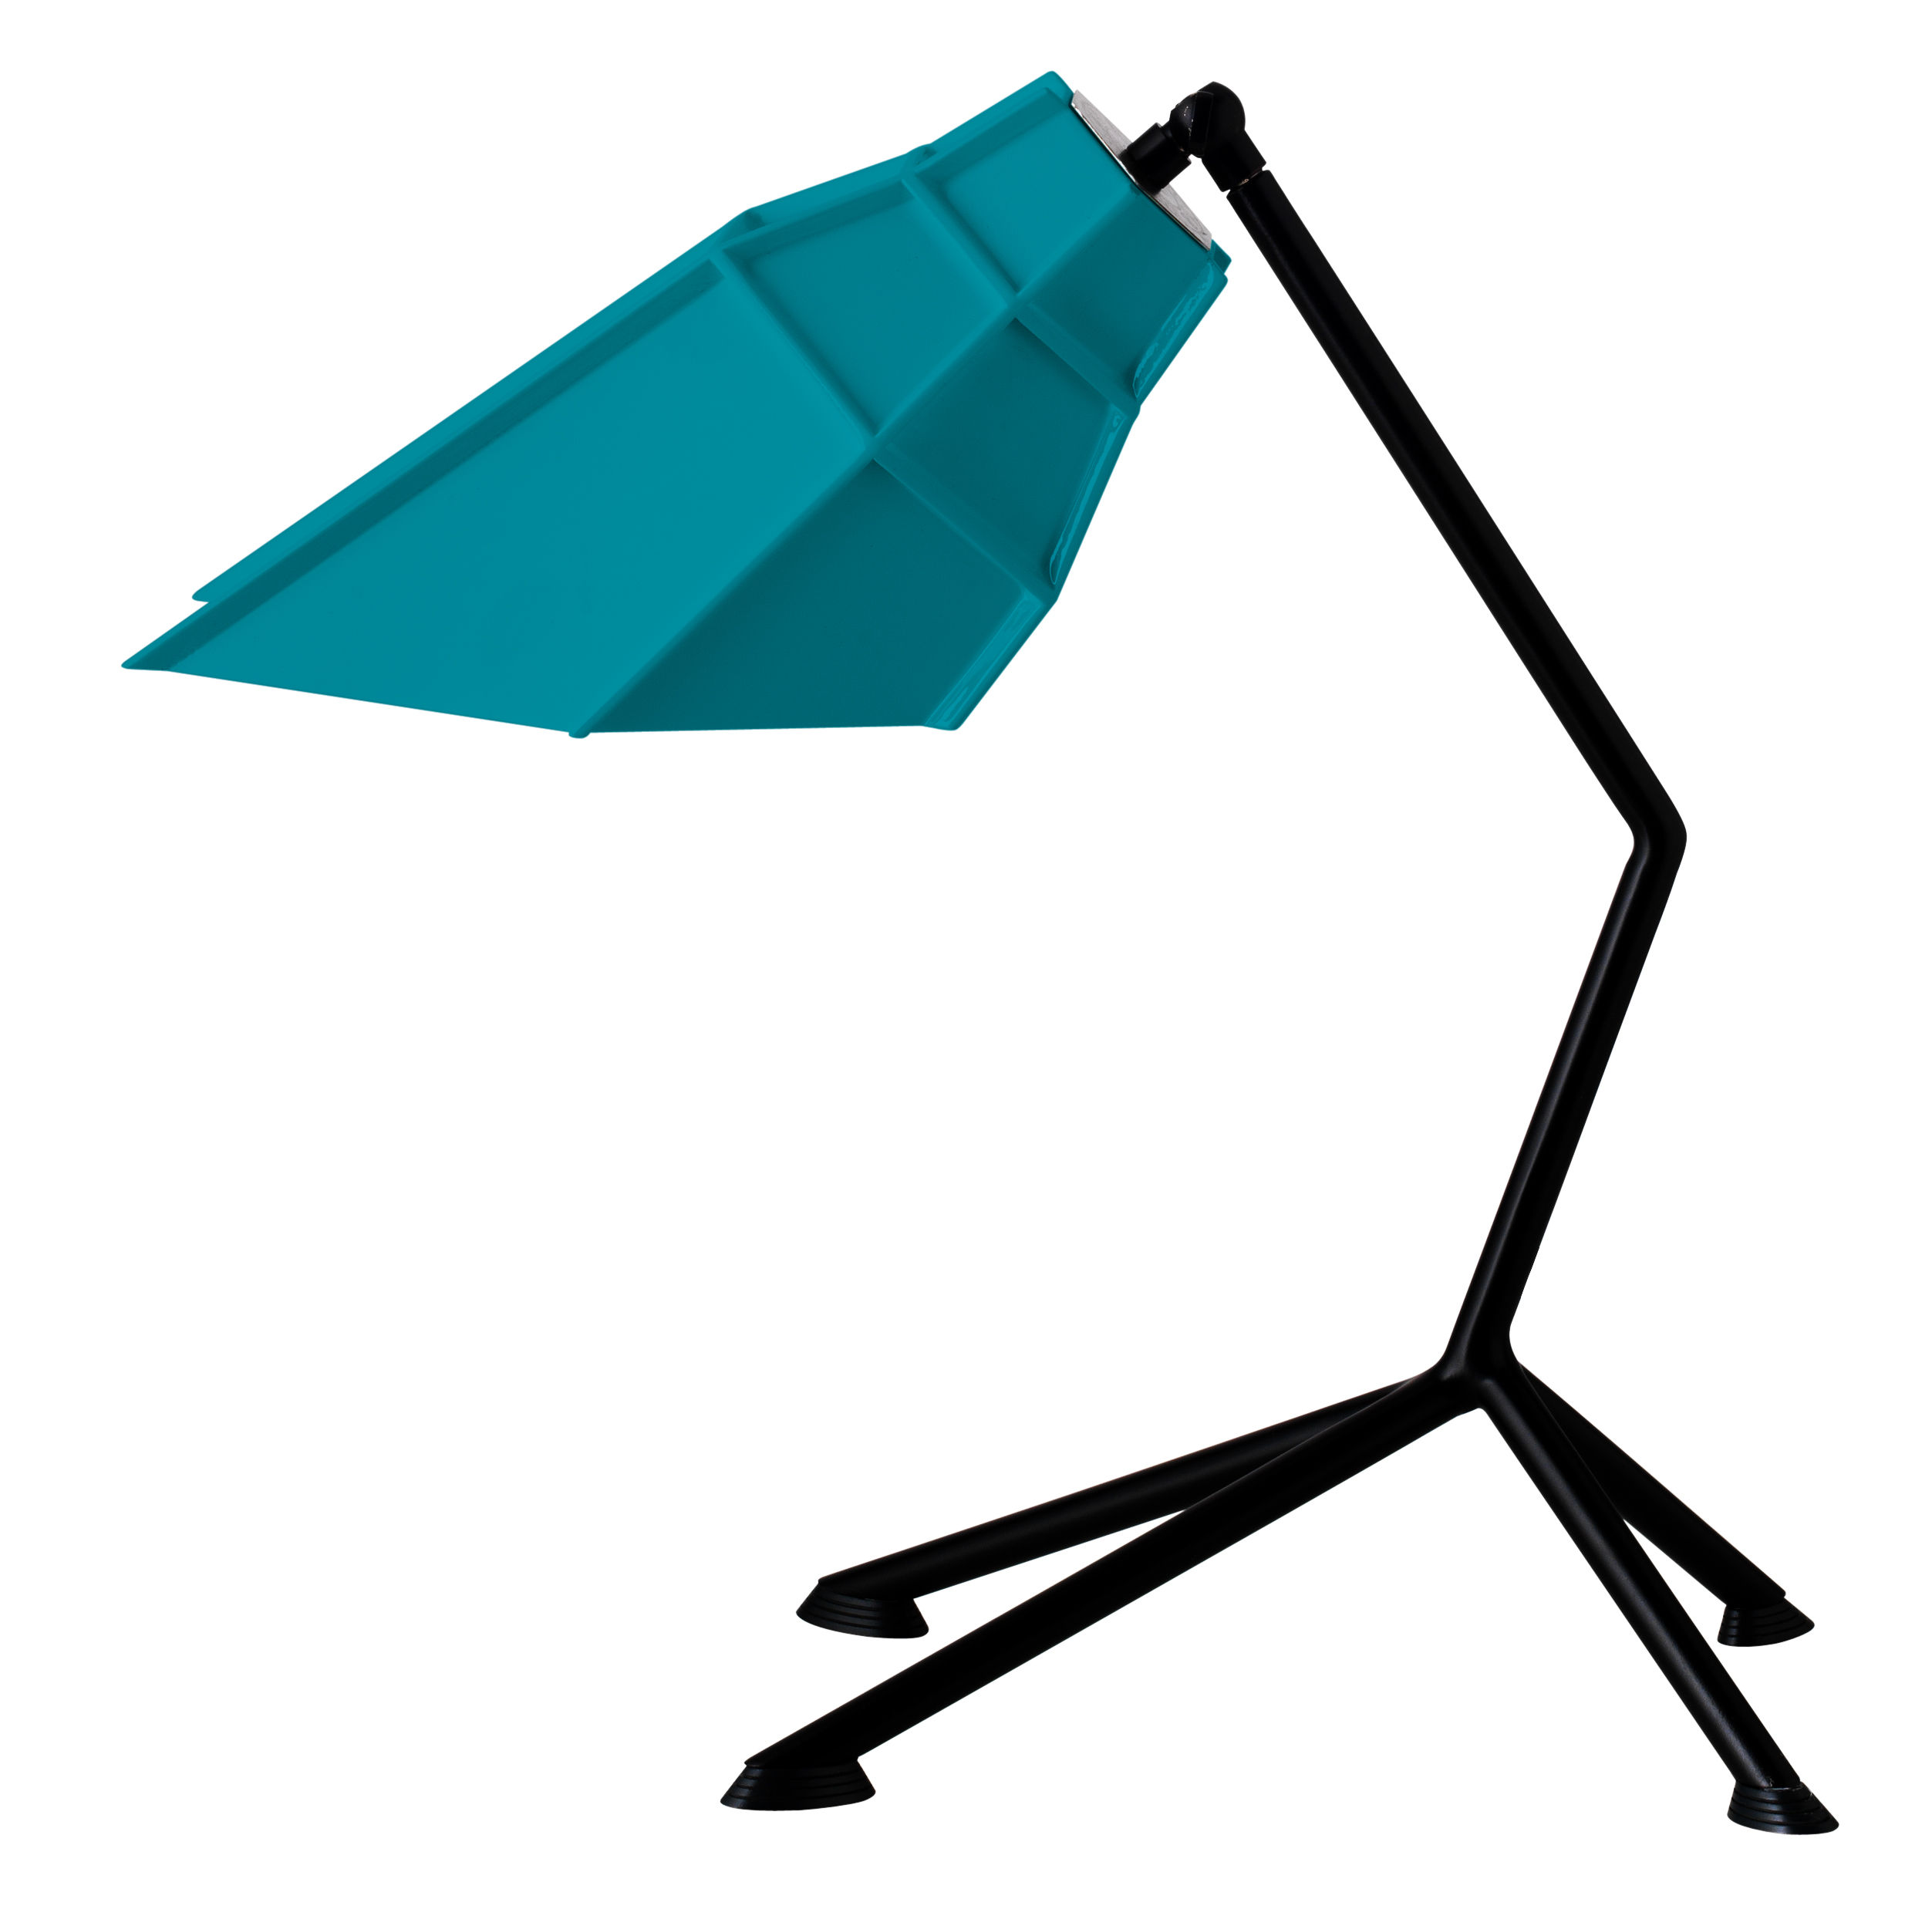 Lighting - Table Lamps - Pett Table lamp - Table lamp by Diesel with Foscarini - Azure blue / Black foot - Painted steel, Polycarbonate